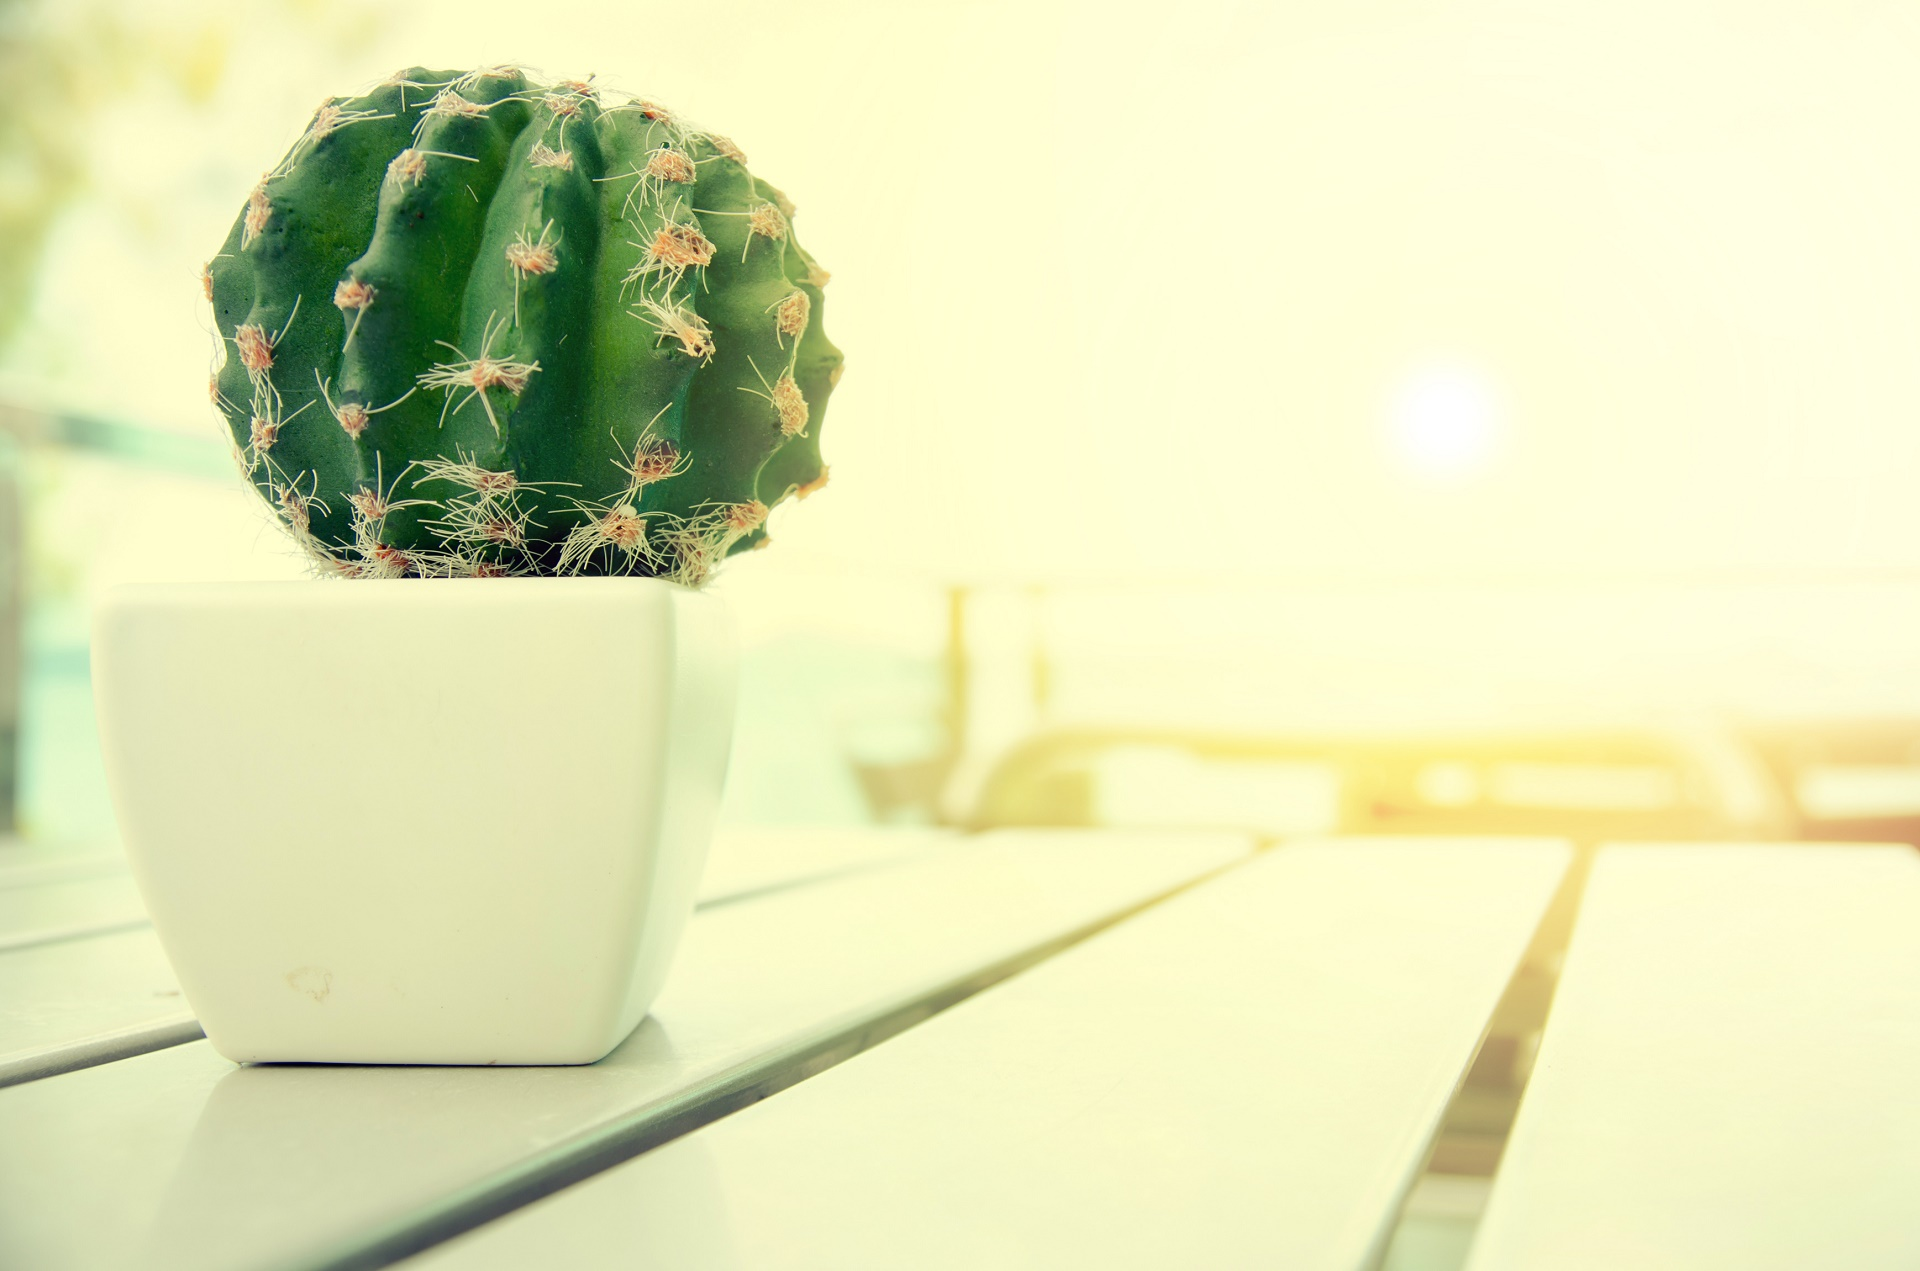 hd cactus wallpapers - photo #10